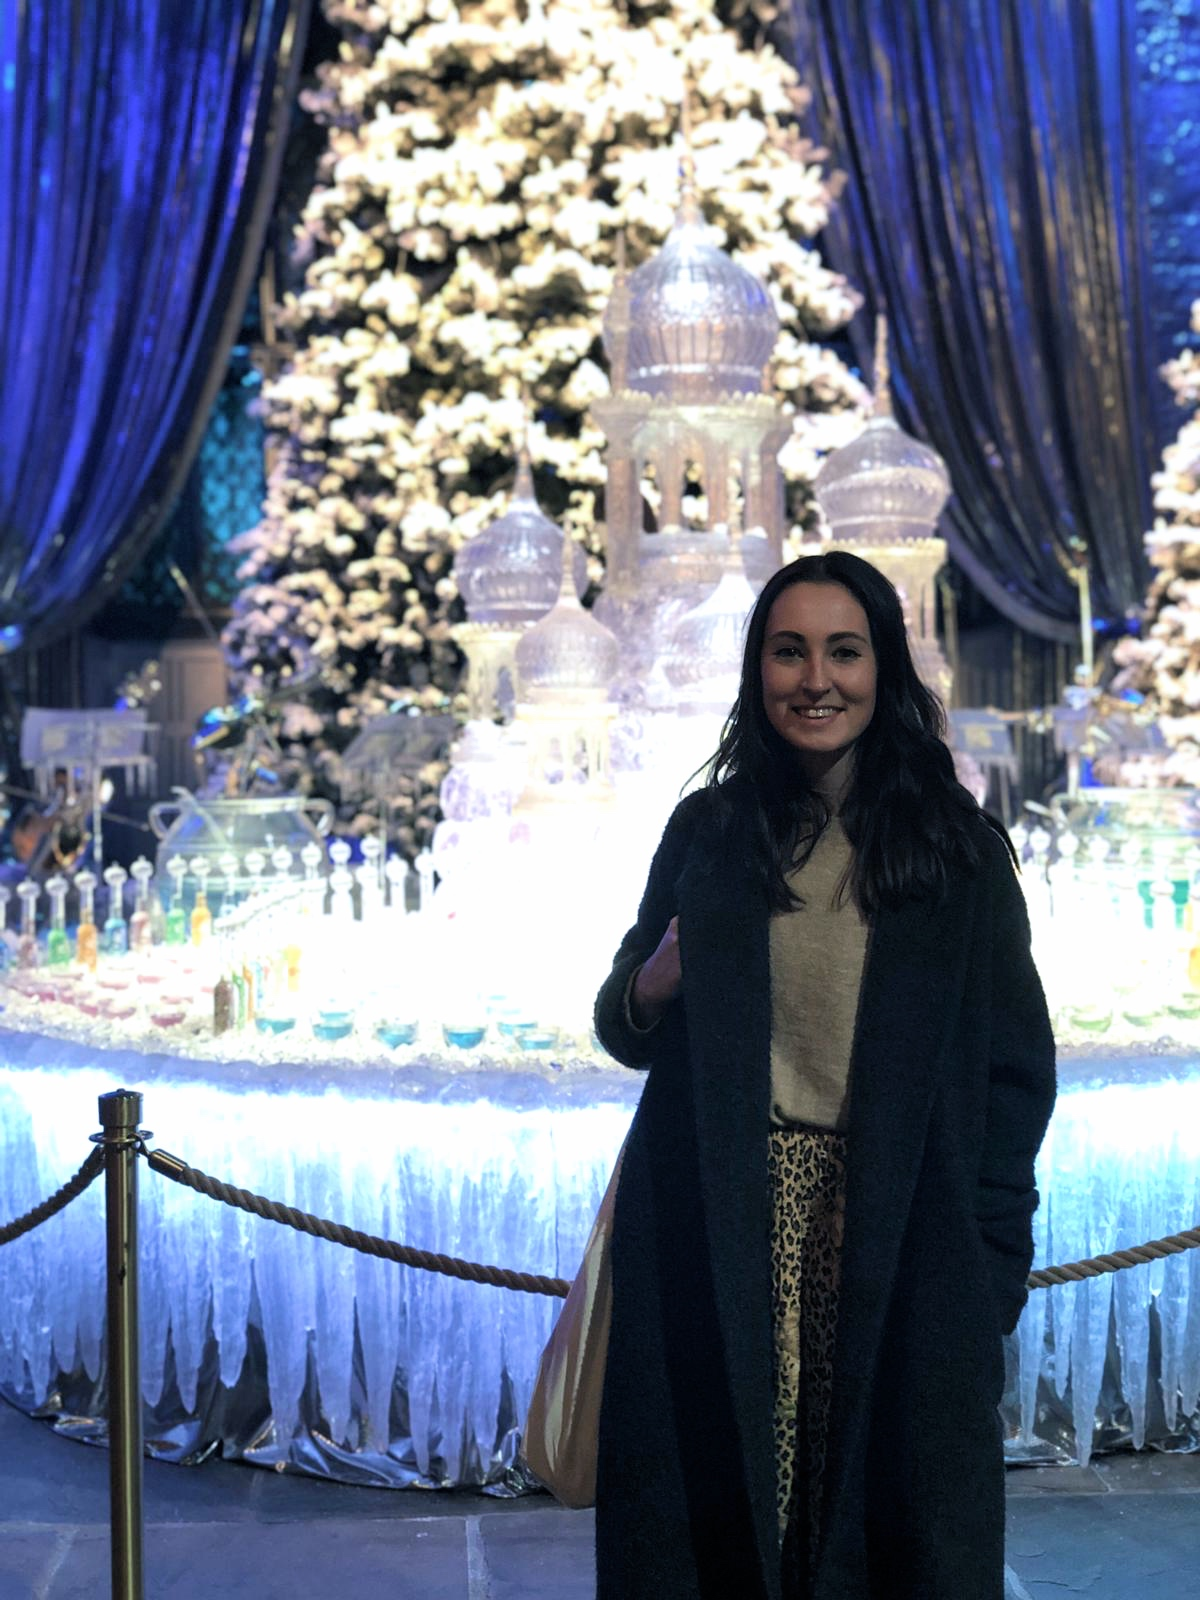 Standing in front of the ice sculpture at the Yule Ball